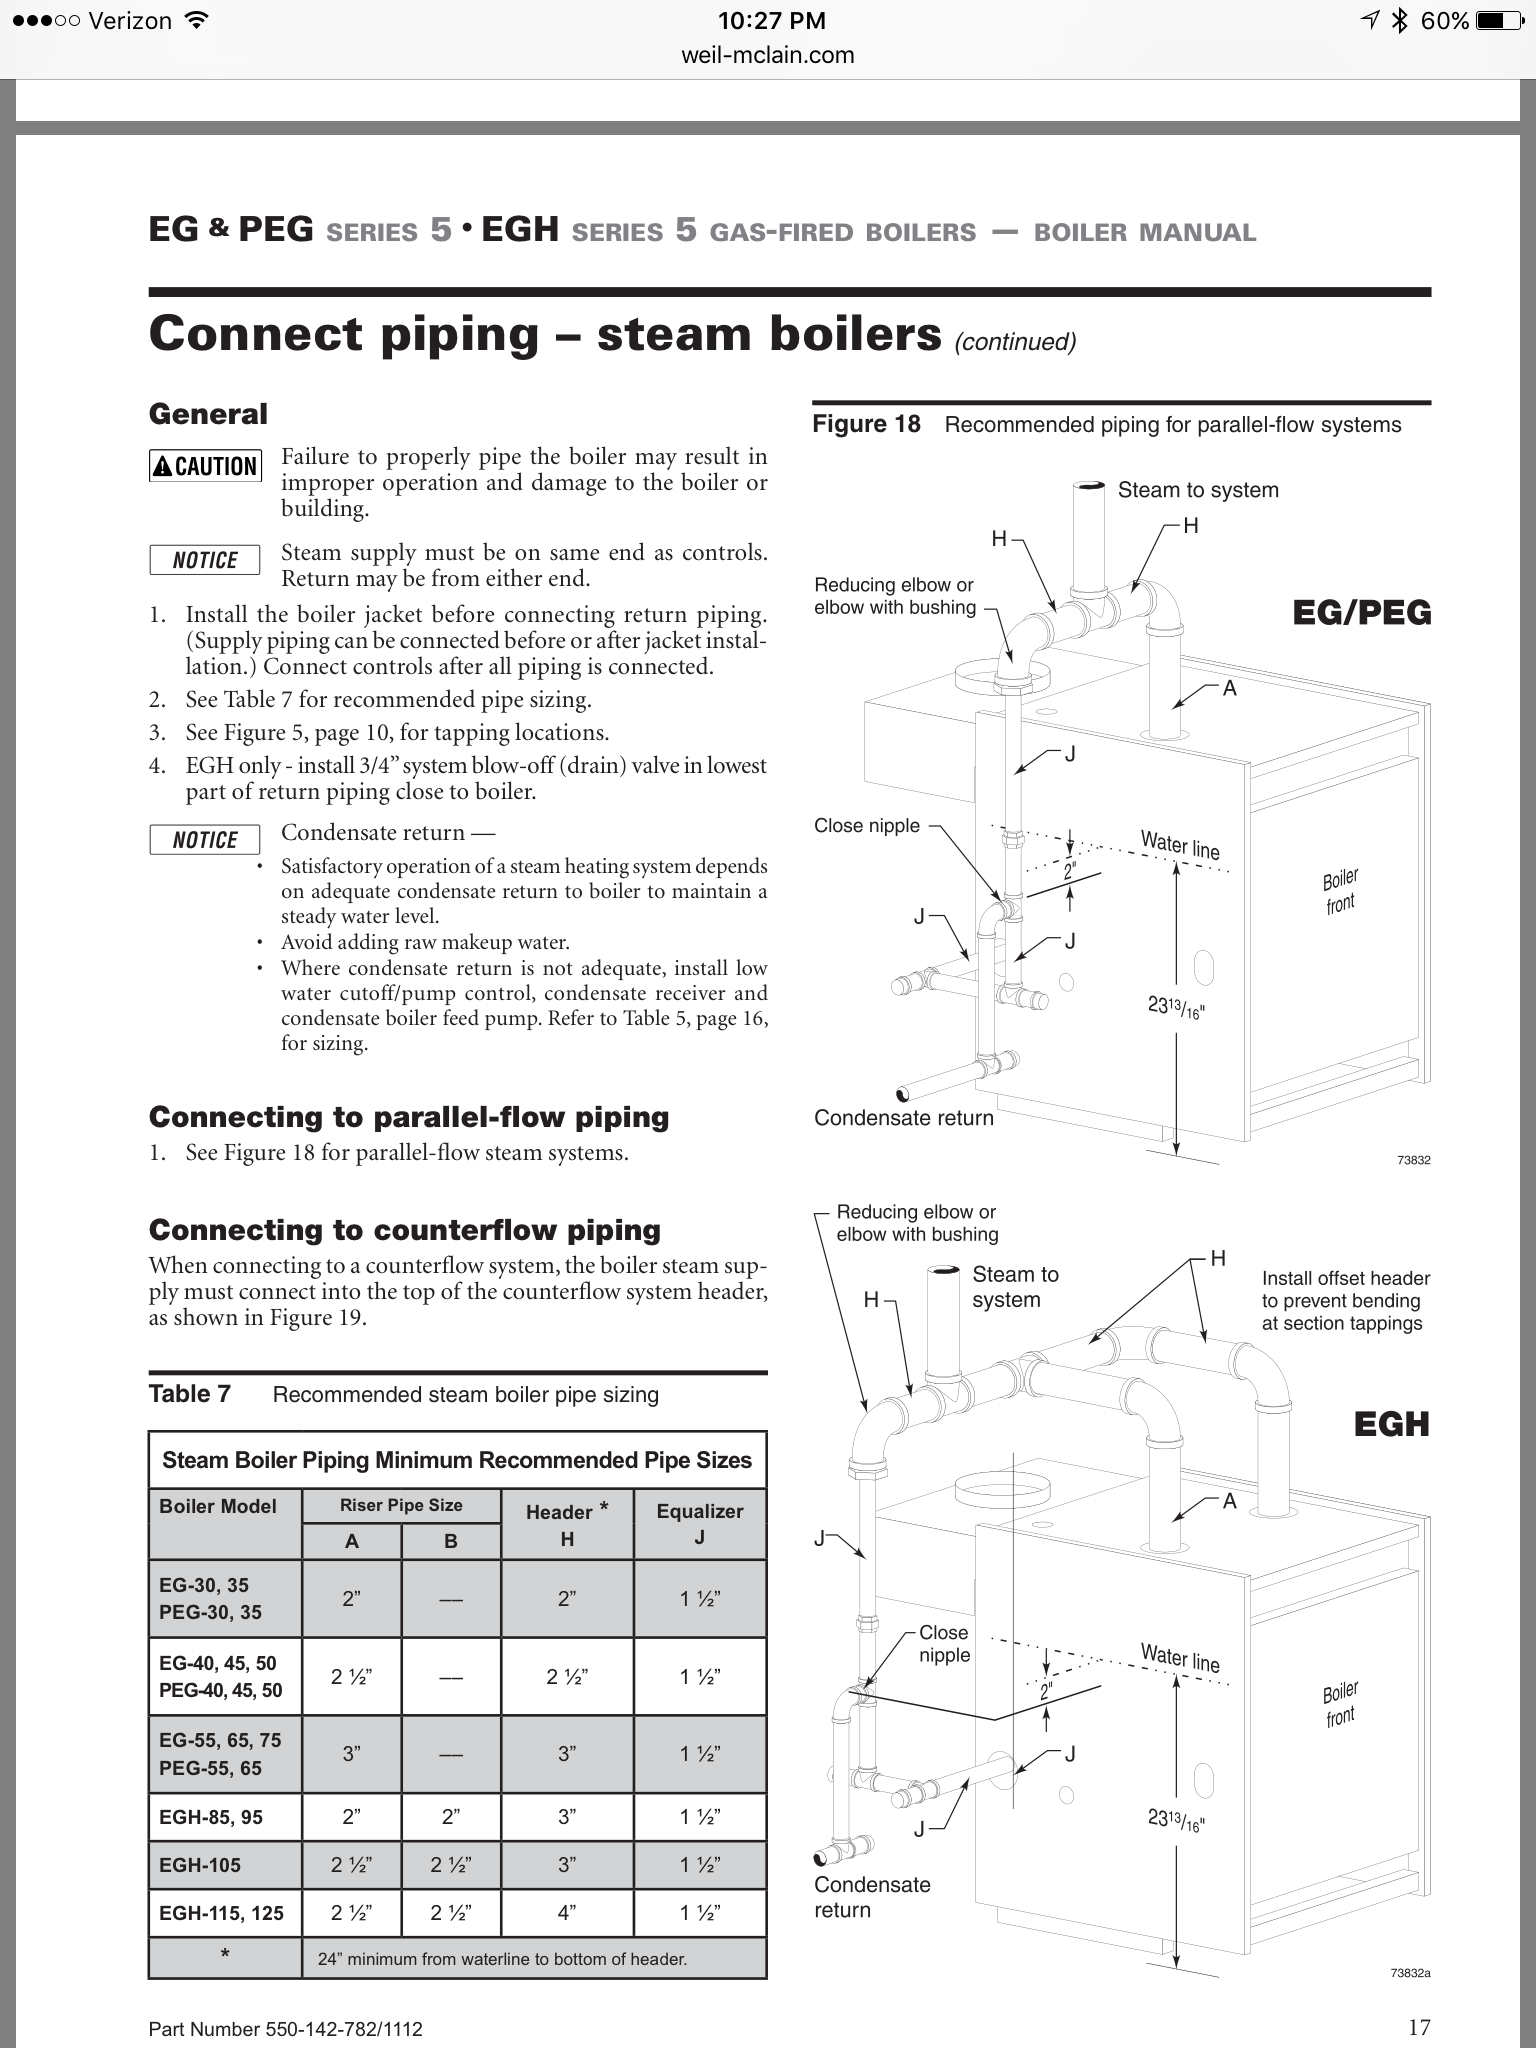 Awful Smell Health Concerns From New Weil Mclain Install Heating Boiler Wiring Diagram Img 0311